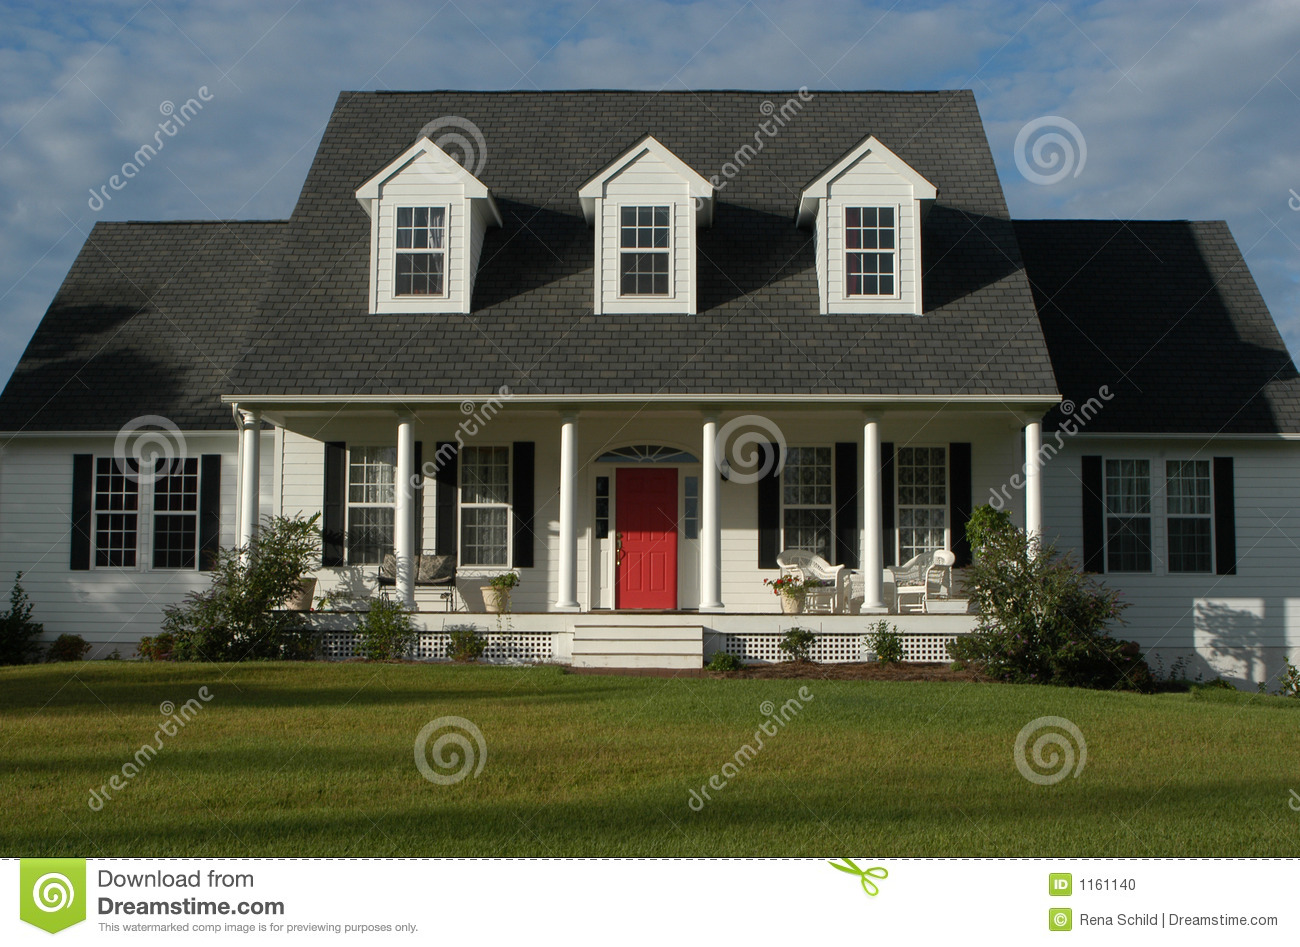 Maison am ricaine photo stock image 1161140 - Maison al americaine ...